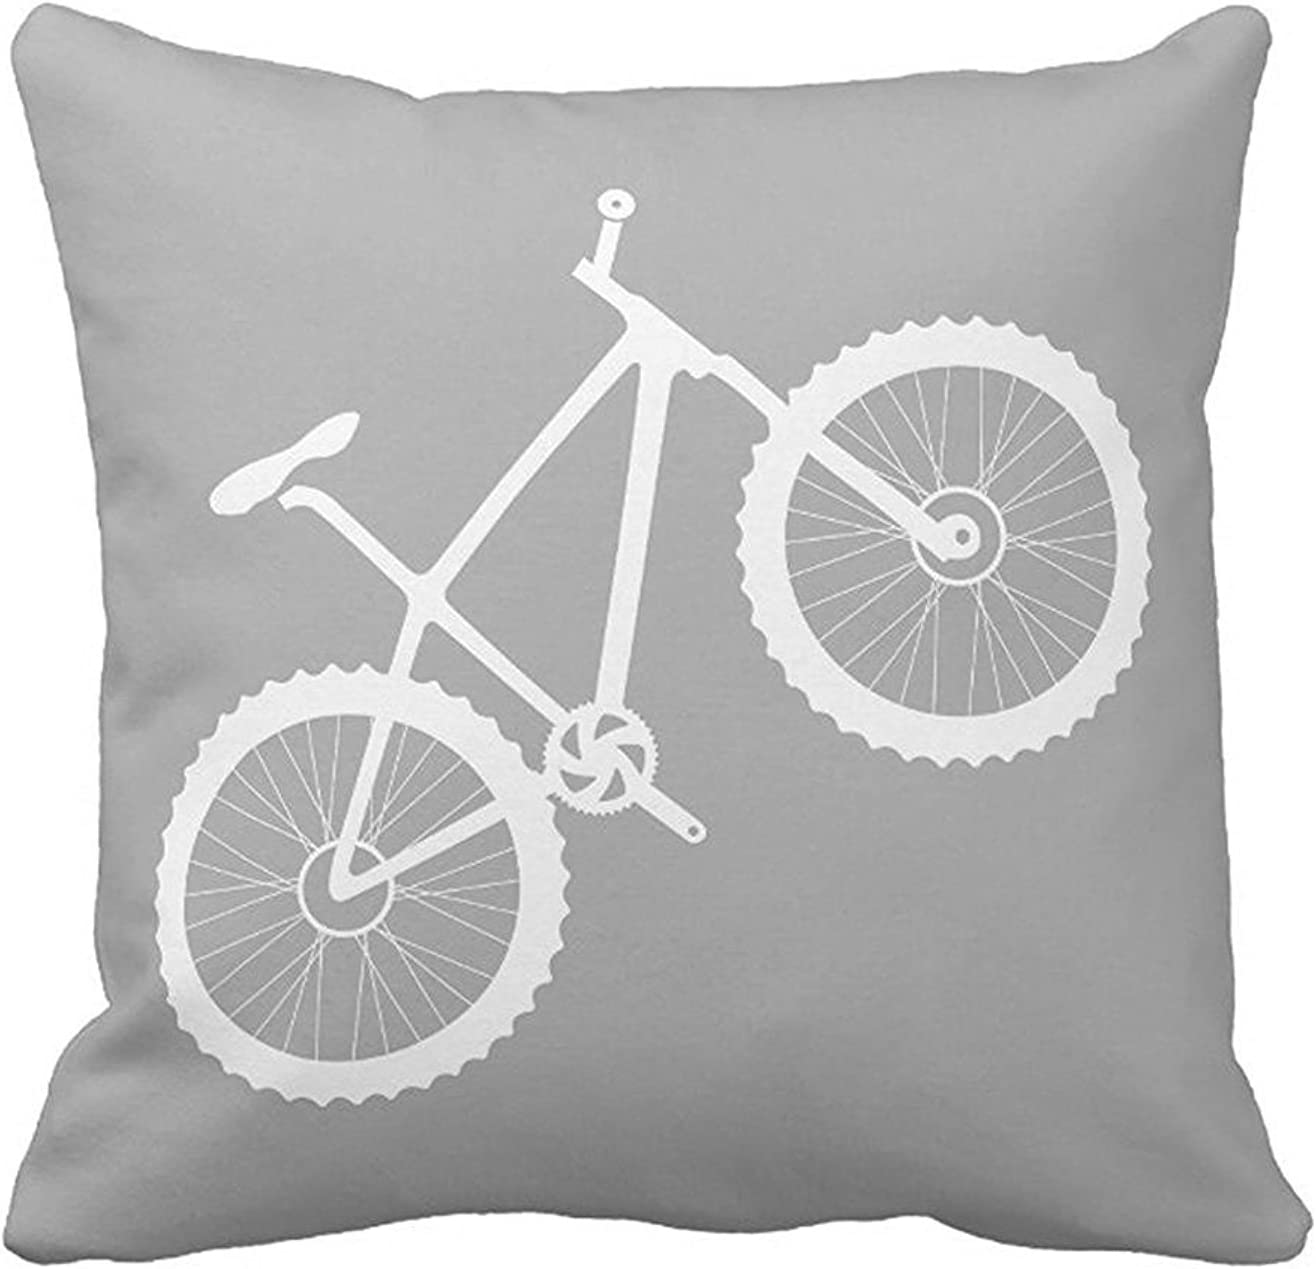 Custom home decorativo blanco bicicleta en gris manta funda de ...